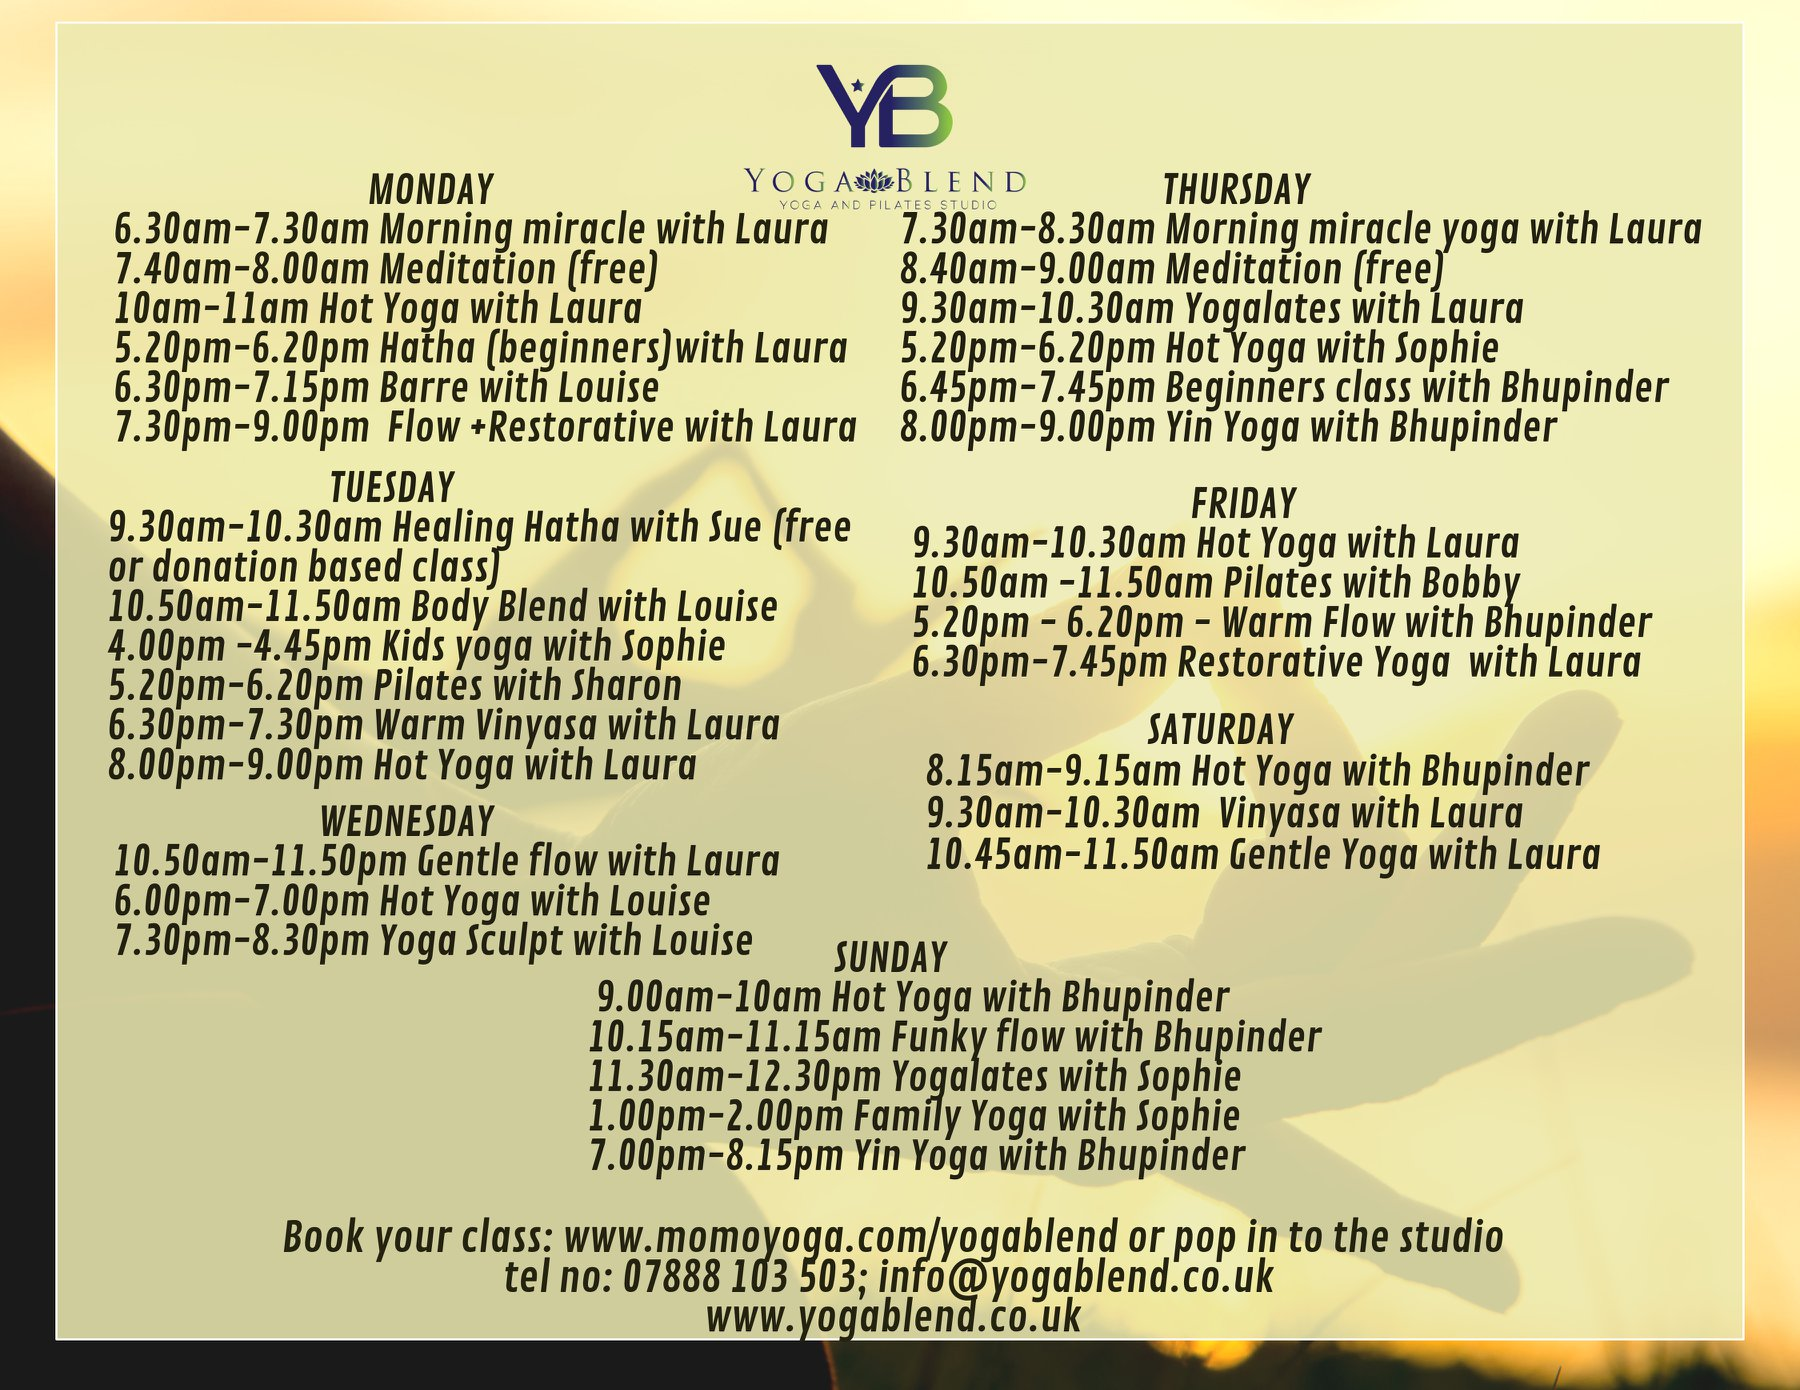 ****Our new timetable***